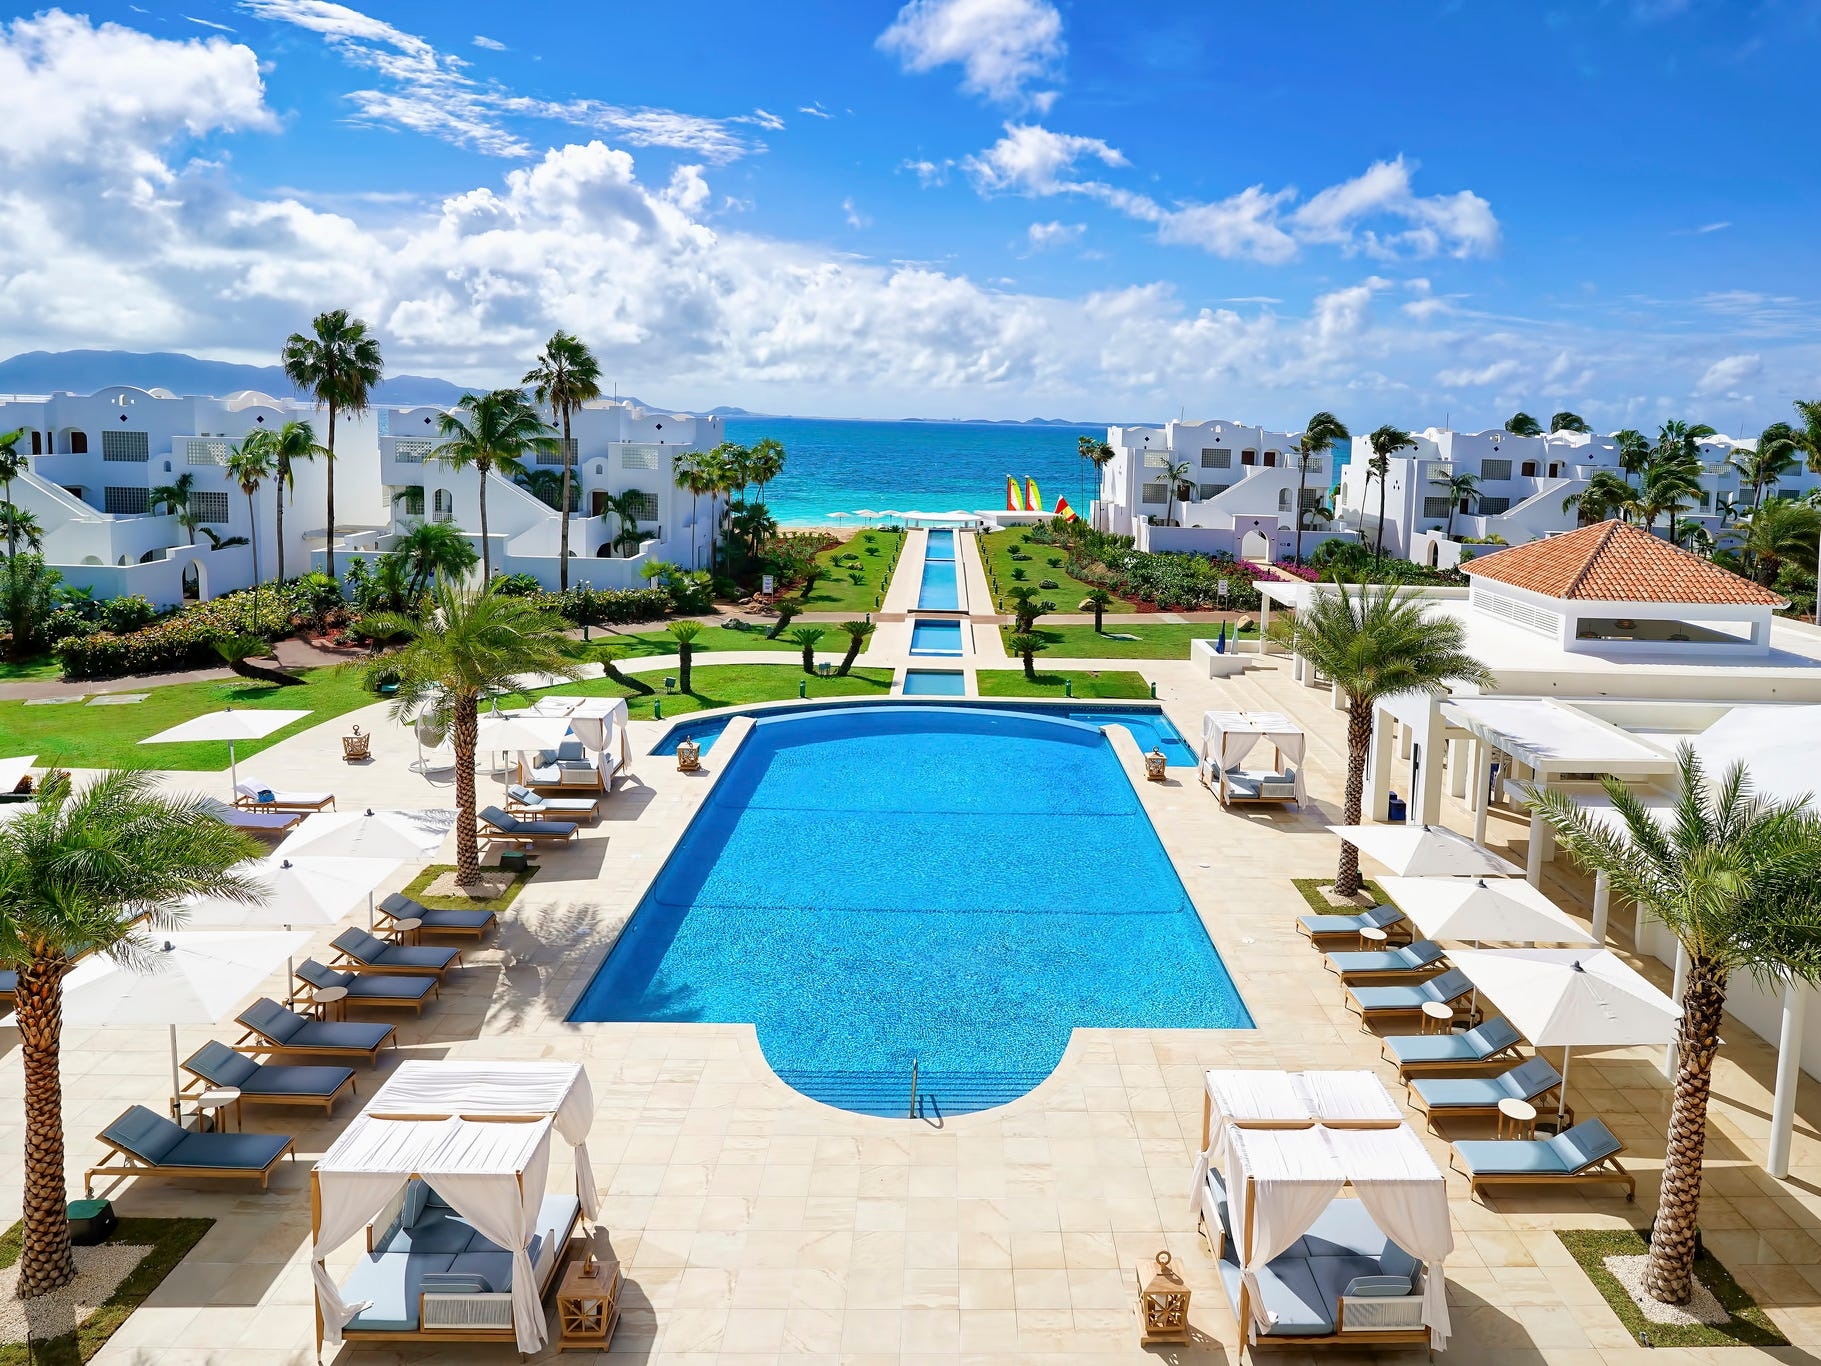 With dazzling views of Rendezvous Bay, the longest beach on Anguilla, the pool at the upscale CuisinArt Golf Resort & Spa is a swanky showstopper.